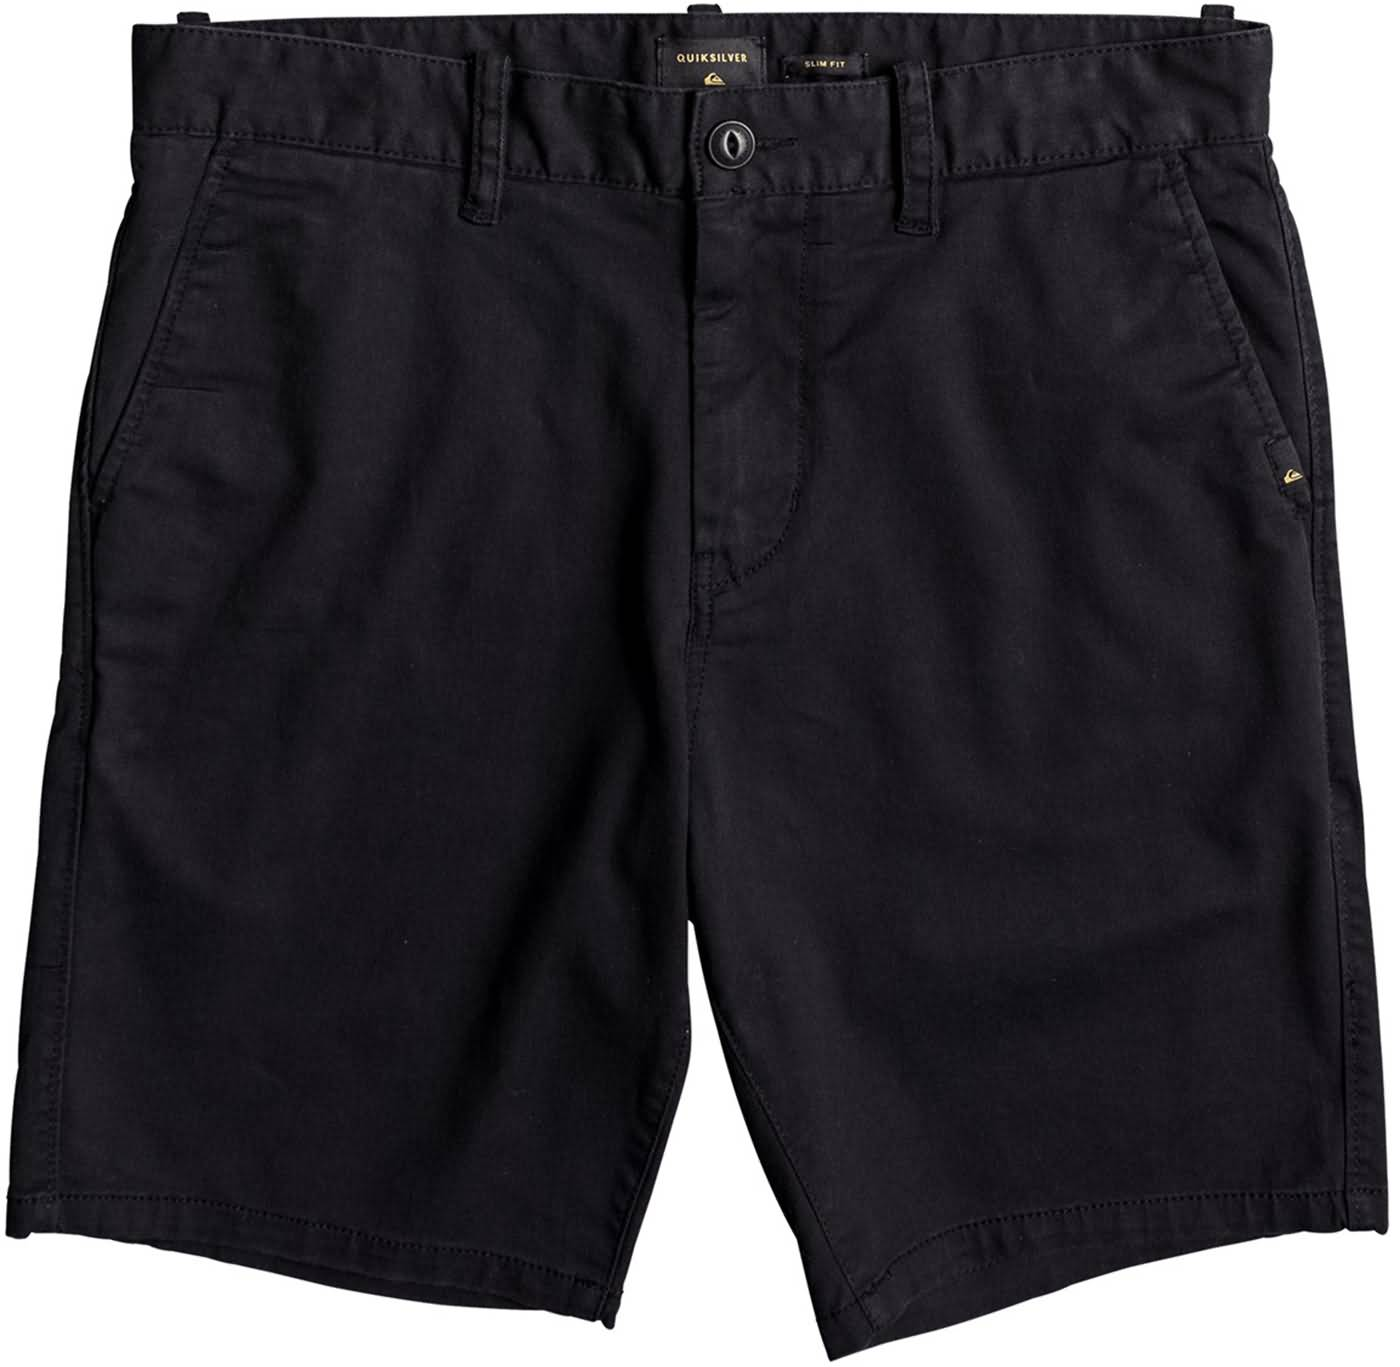 Quiksilver Surf Fall 2017 Mens Lifestyle Beach Walkshorts Preview